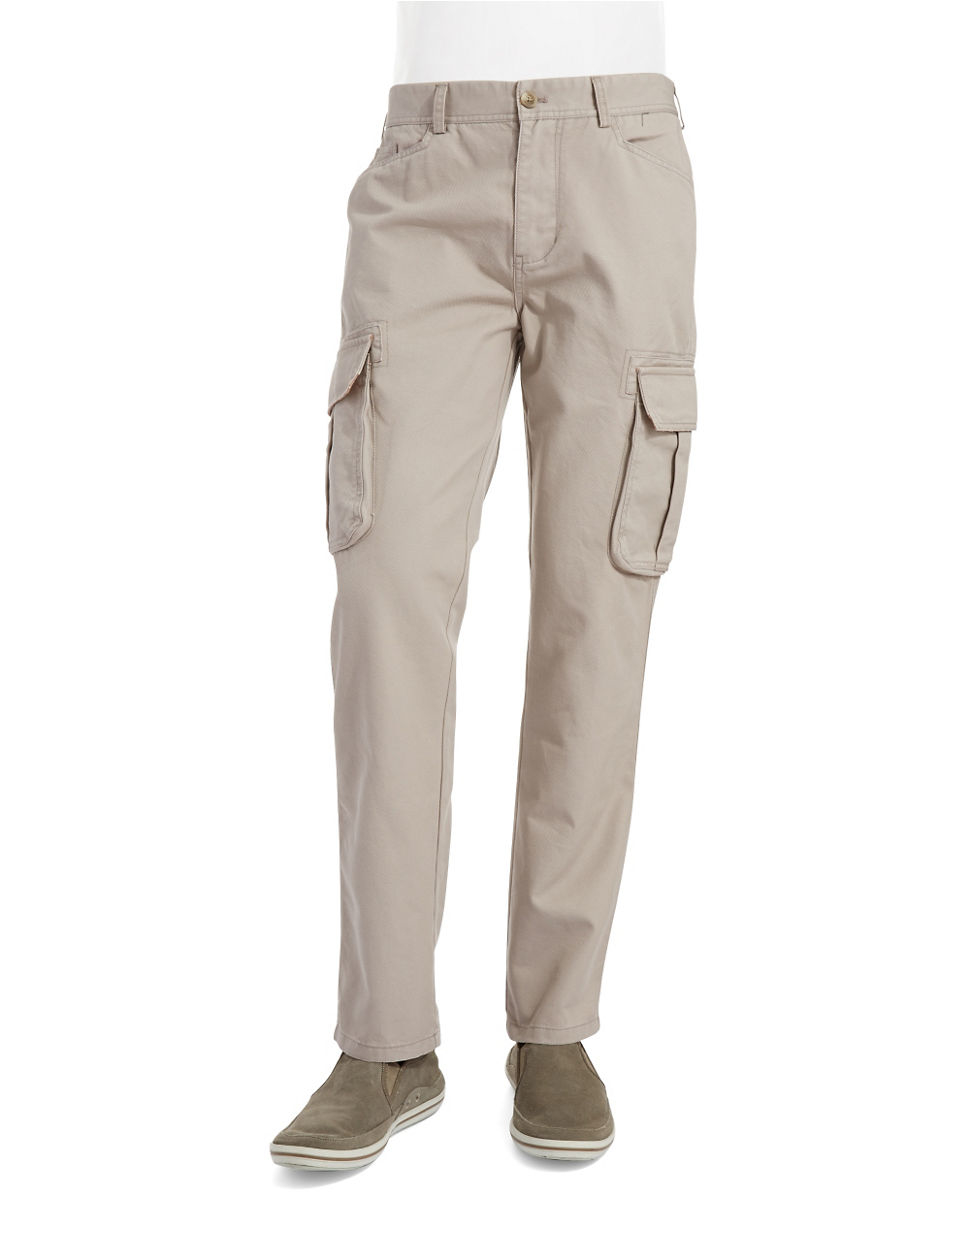 Creative Womens Cotton Cargo Pants  Fantastic Brown Womens Cotton Cargo Pants Inspiration U2013 Playzoa.com